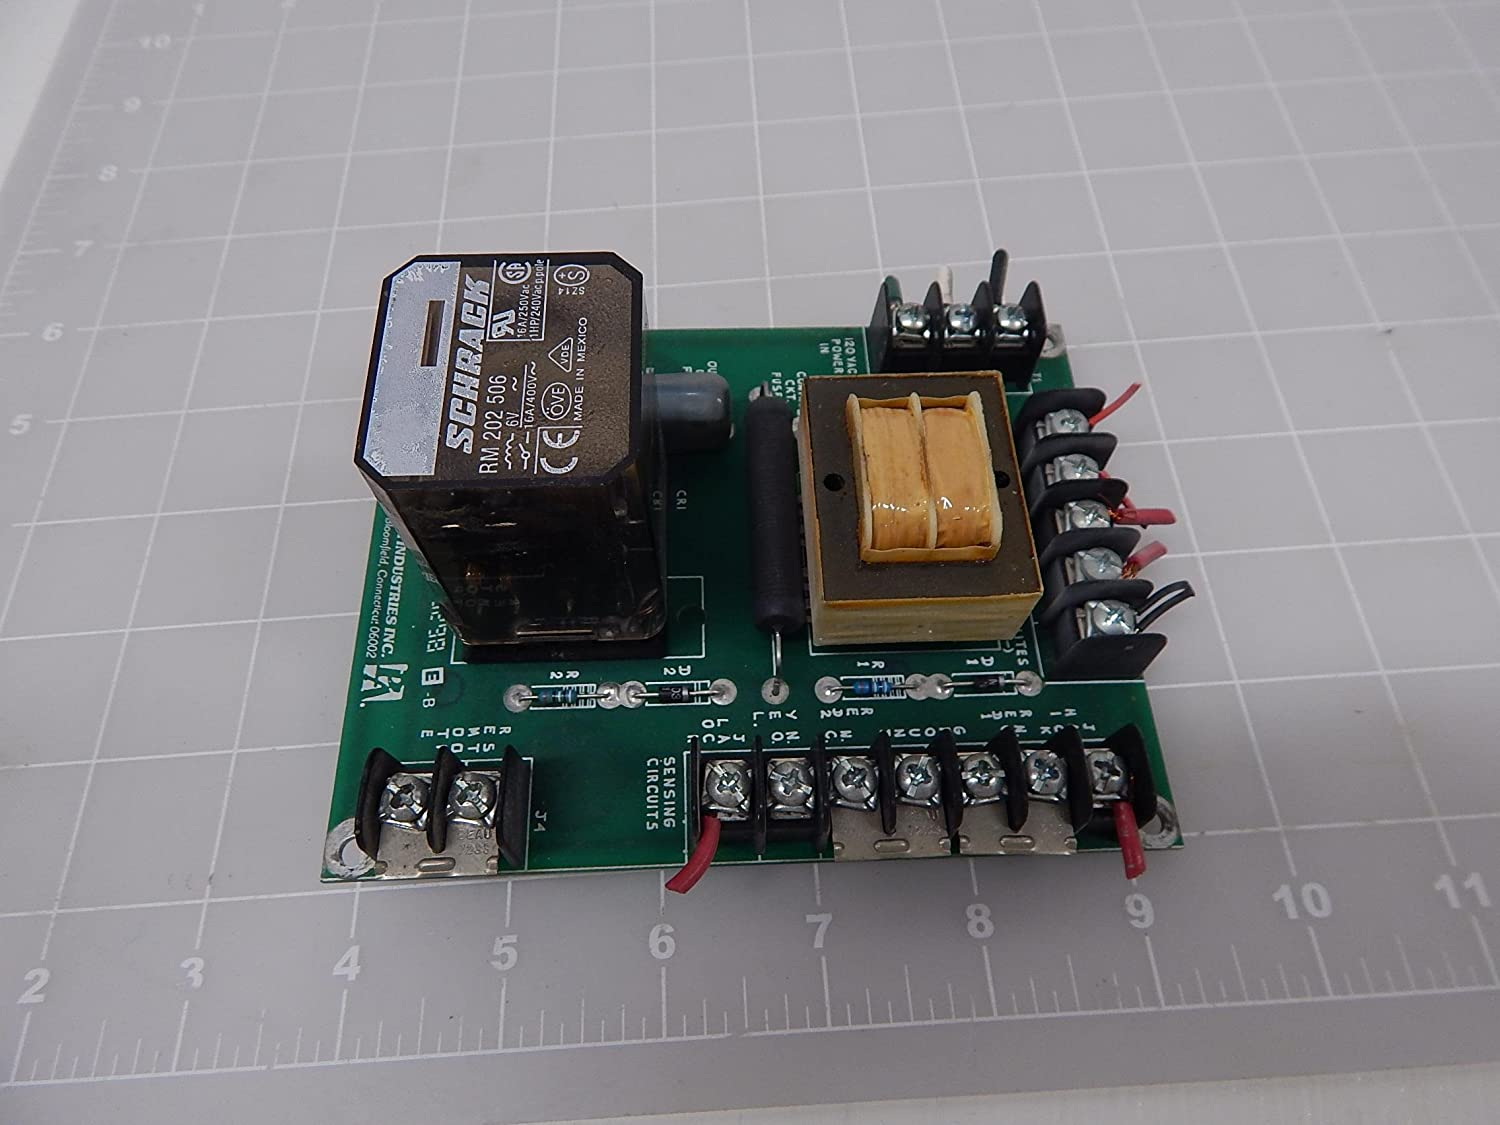 P A 15300 15301 Circuit Board T89236 Industrial Electronic Industries Scientific